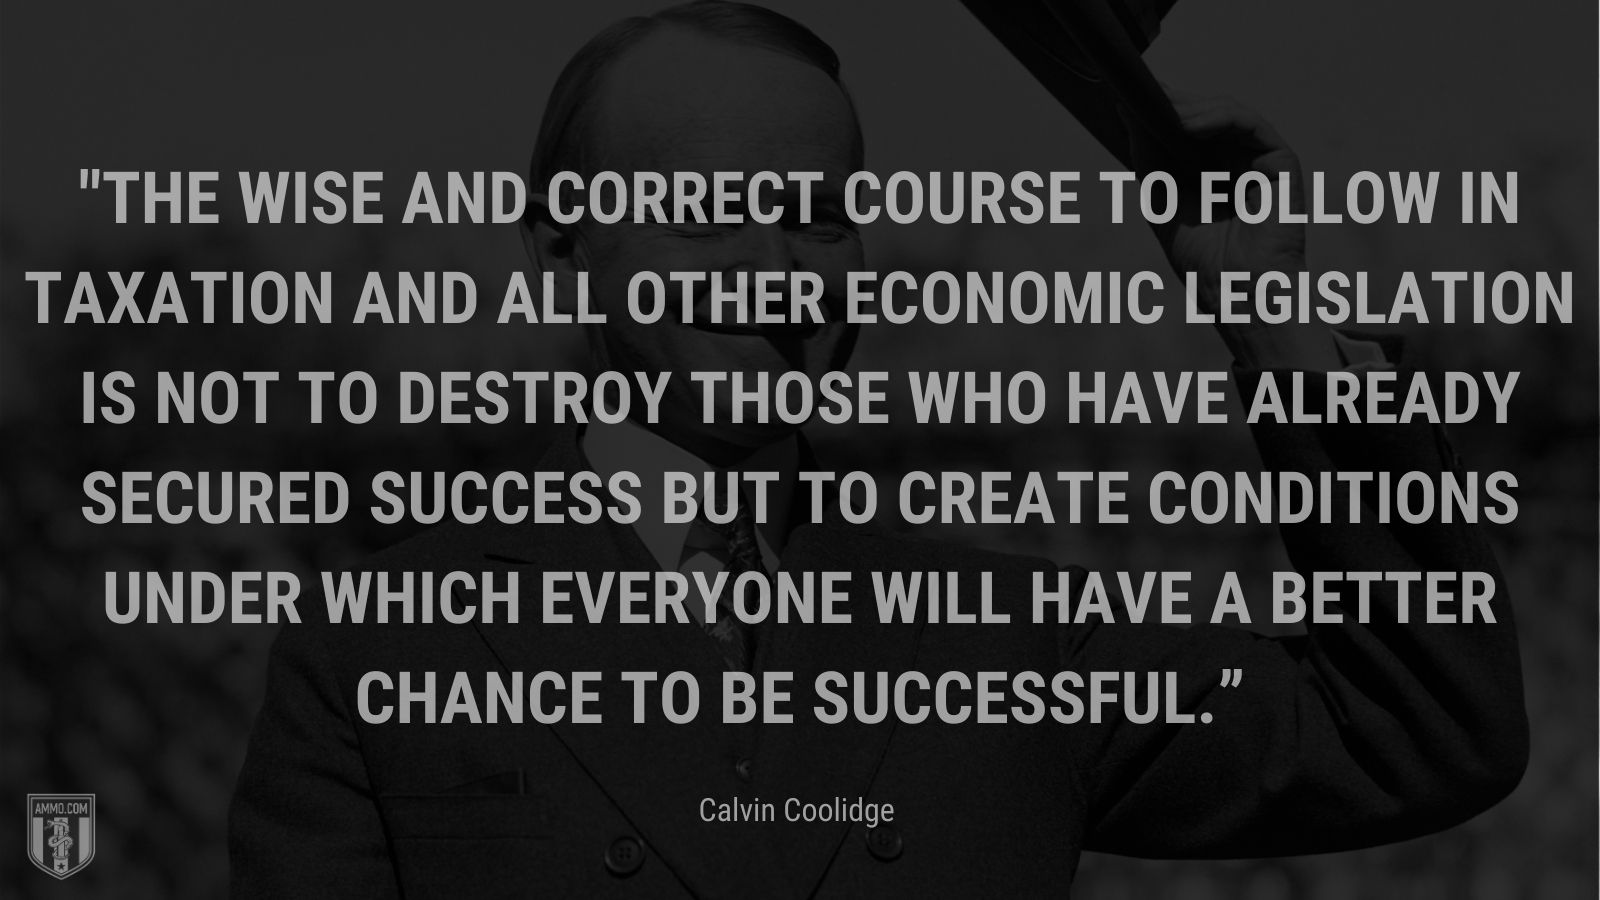 """""""The wise and correct course to follow in taxation and all other economic legislation is not to destroy those who have already secured success but to create conditions under which everyone will have a better chance to be successful."""" - Calvin Coolidge"""